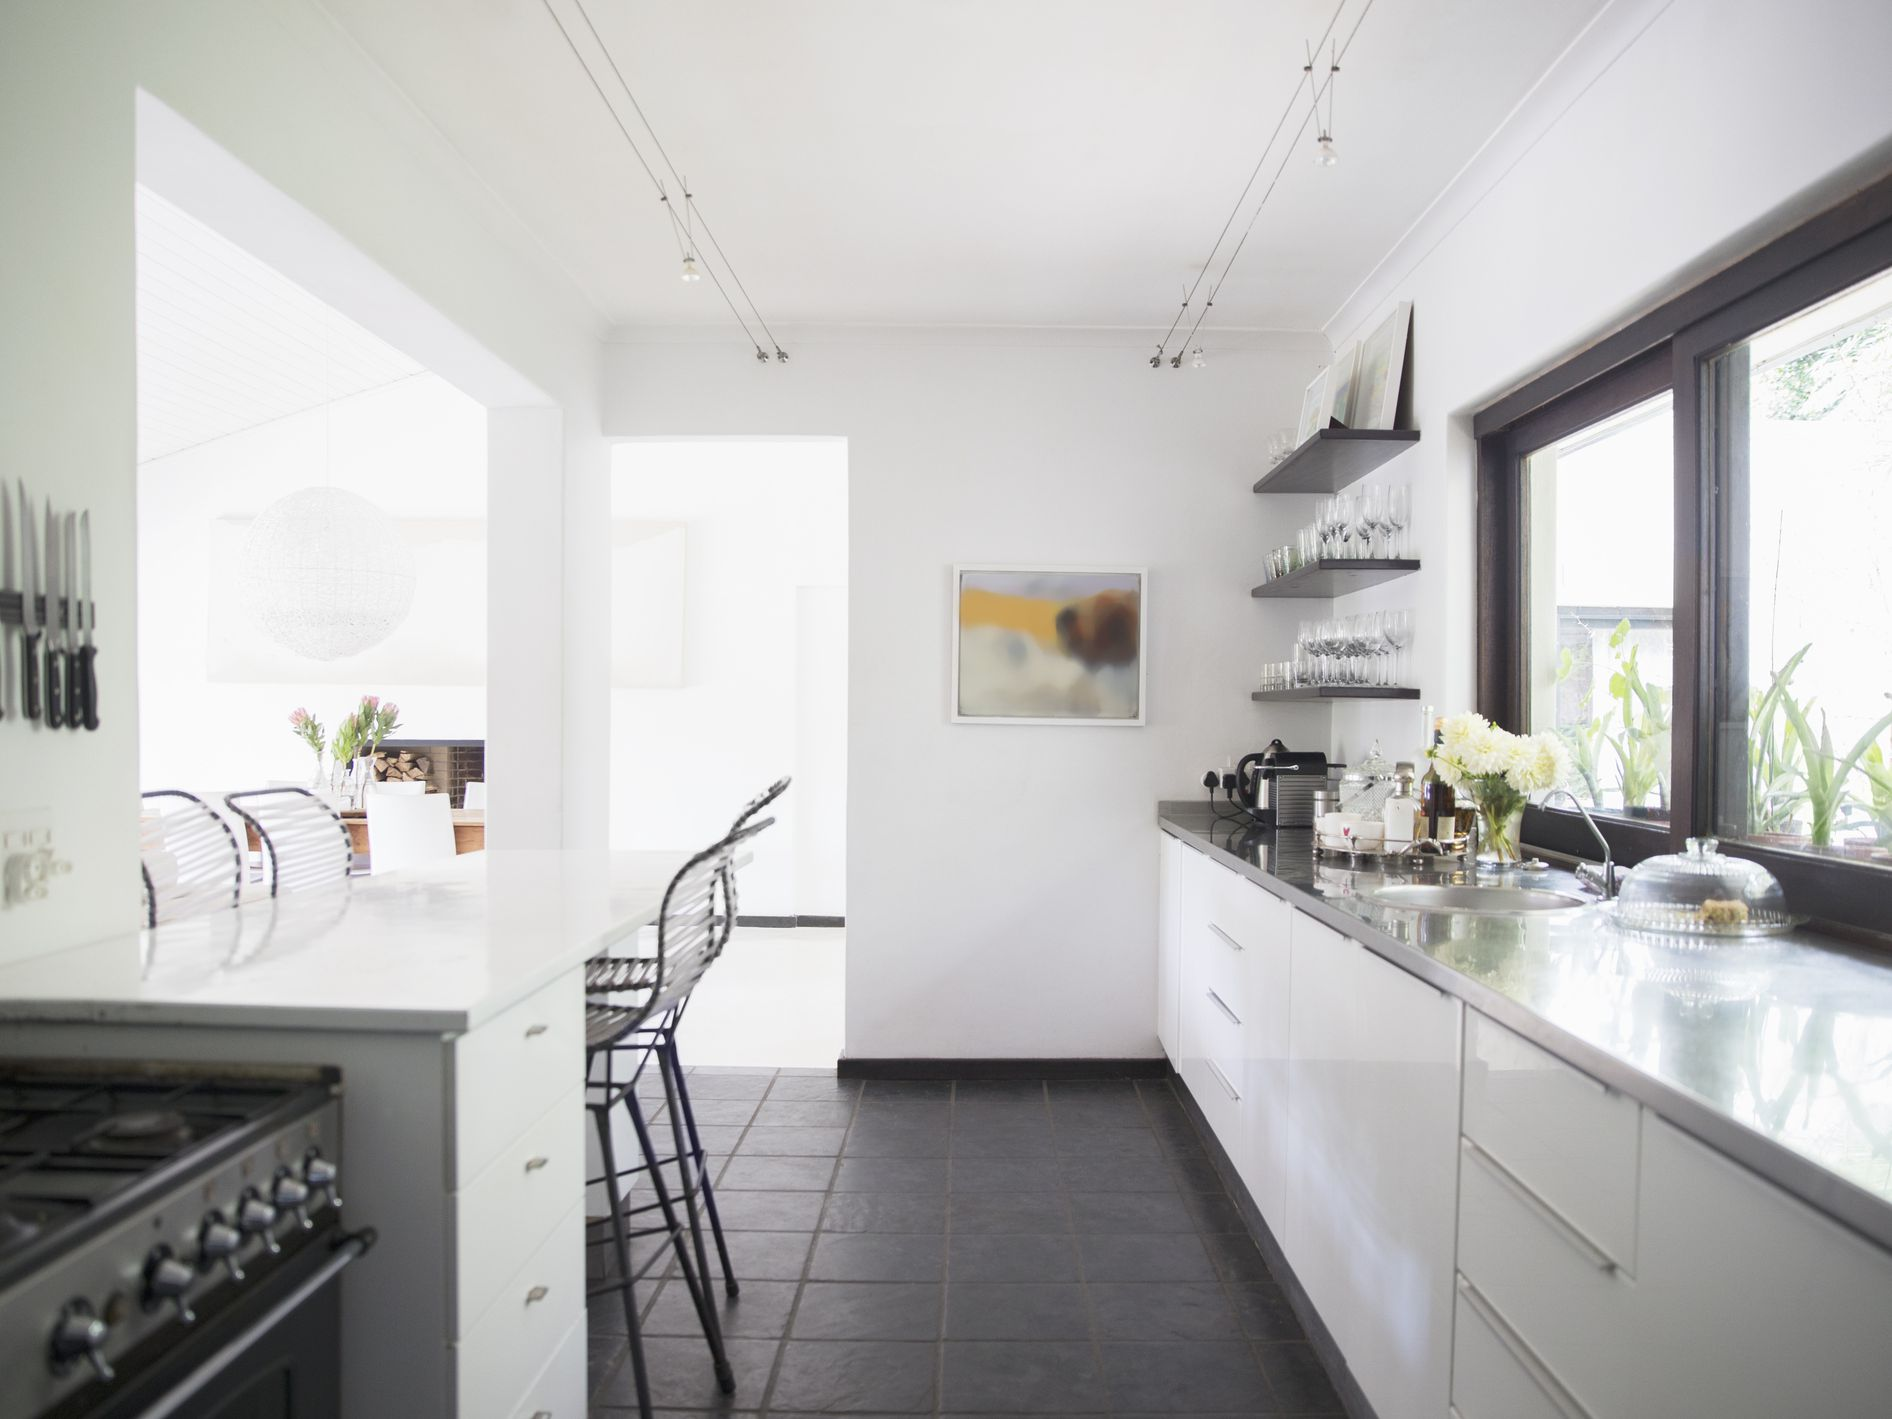 house decorating ideas on a budget.htm tips for staging the kitchen  tips for staging the kitchen